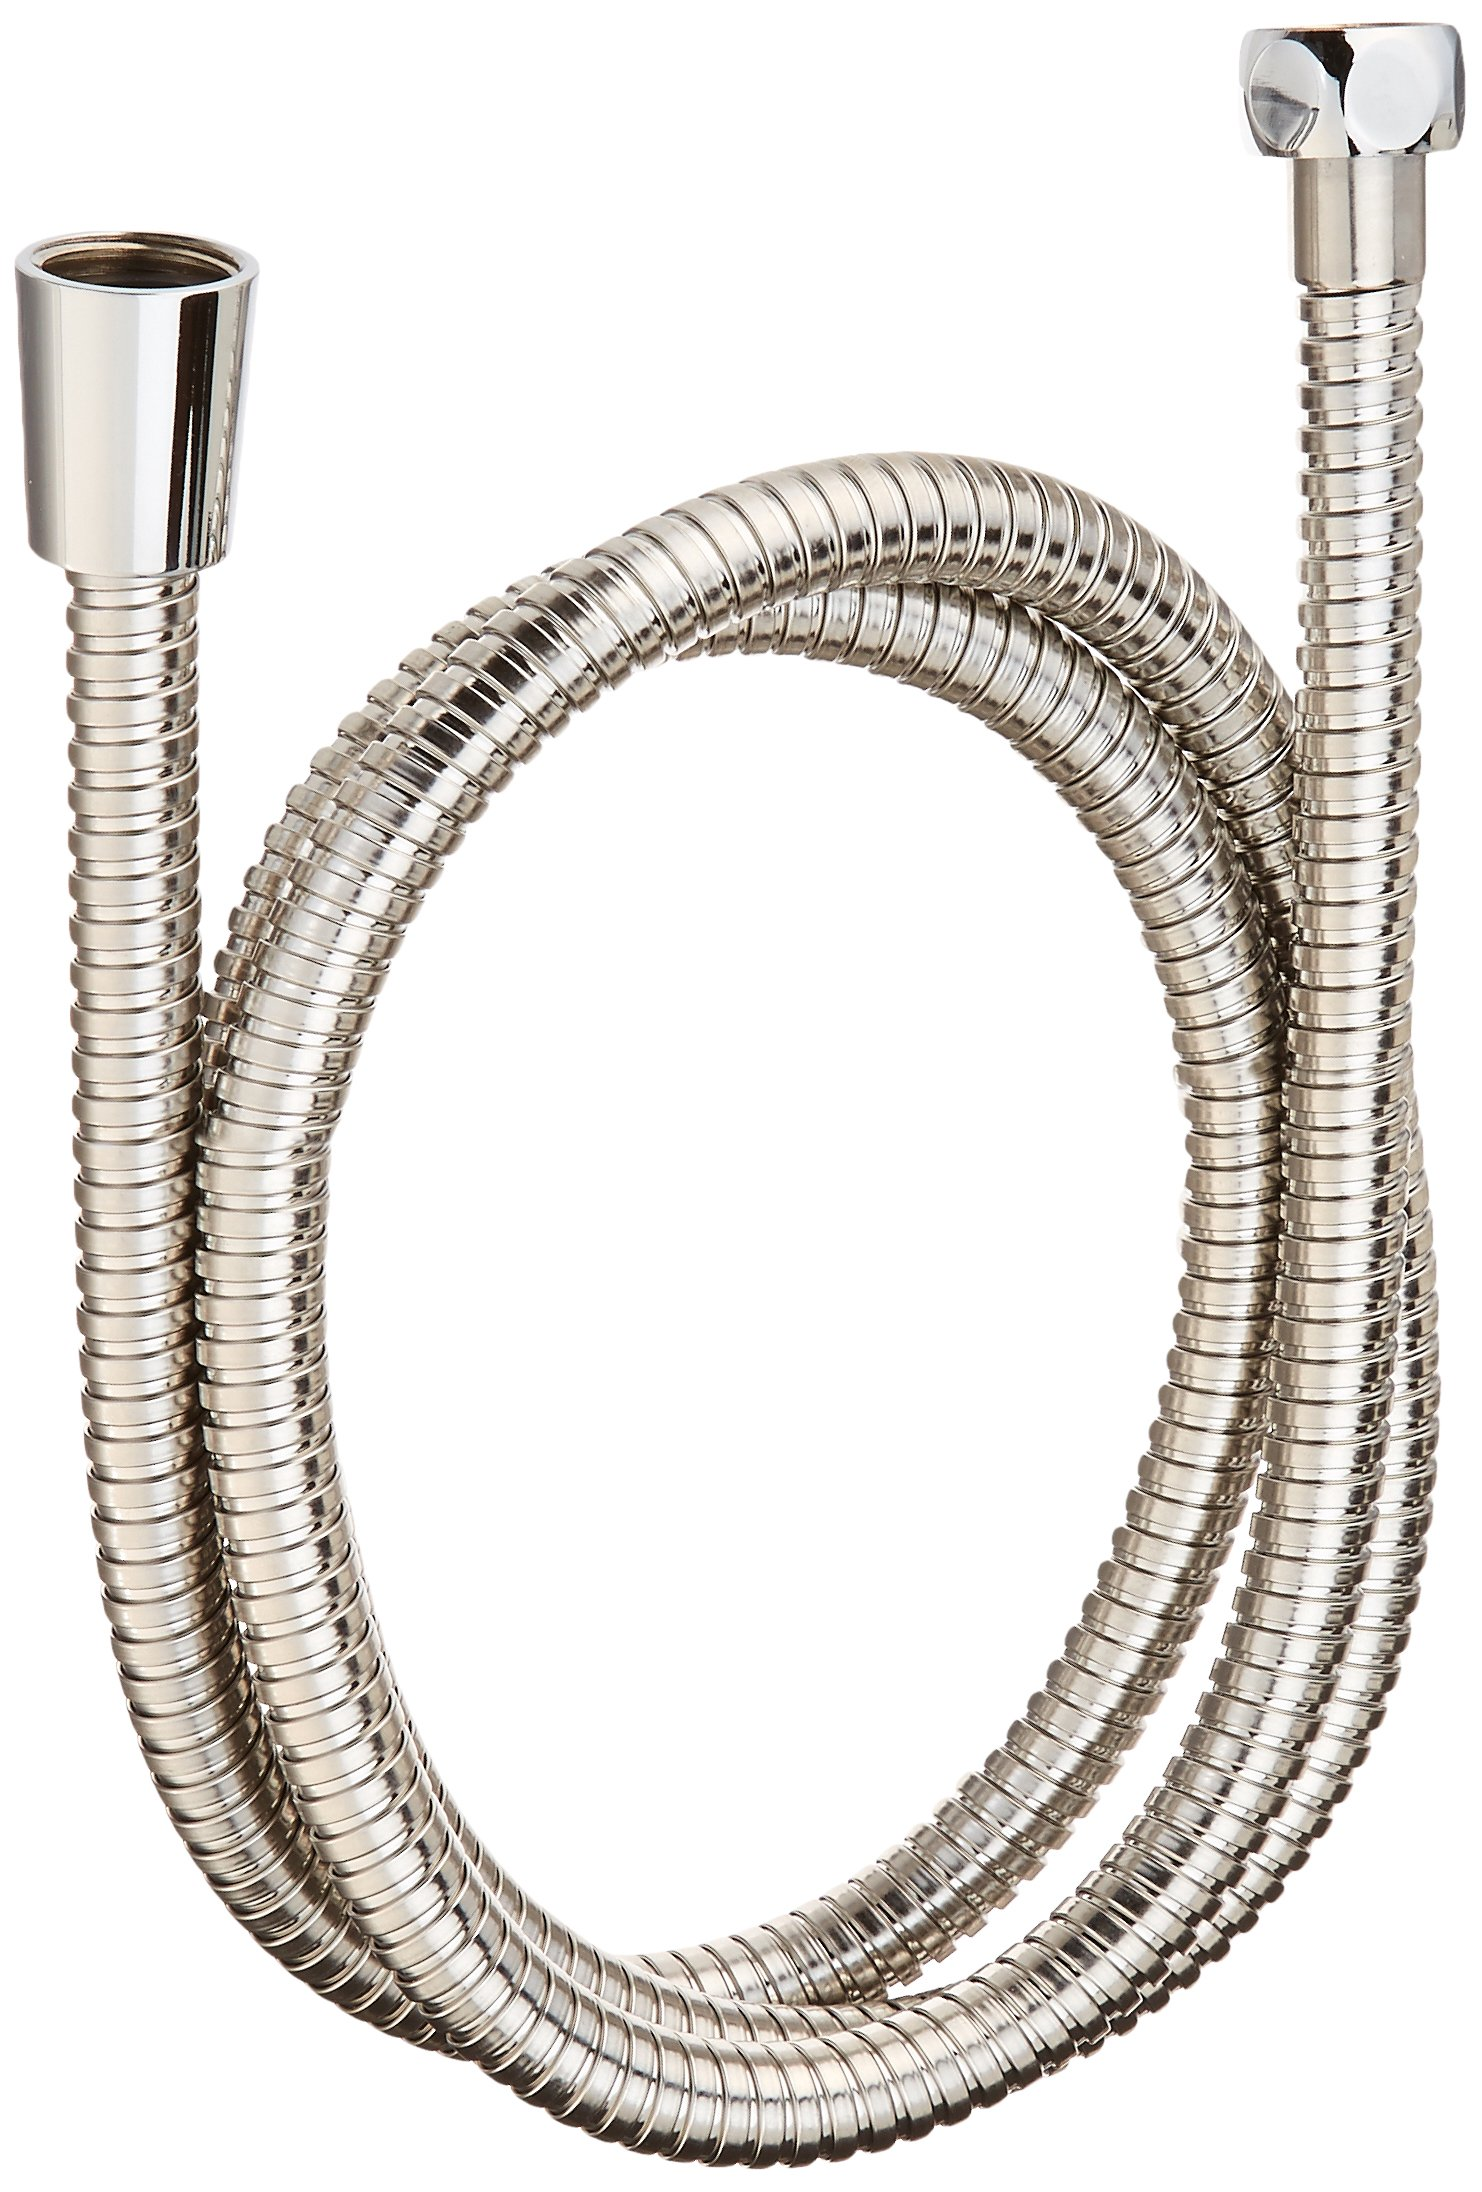 Delta 75007 140 60-Inch Stainless Steel Replacement Hose, Chrome